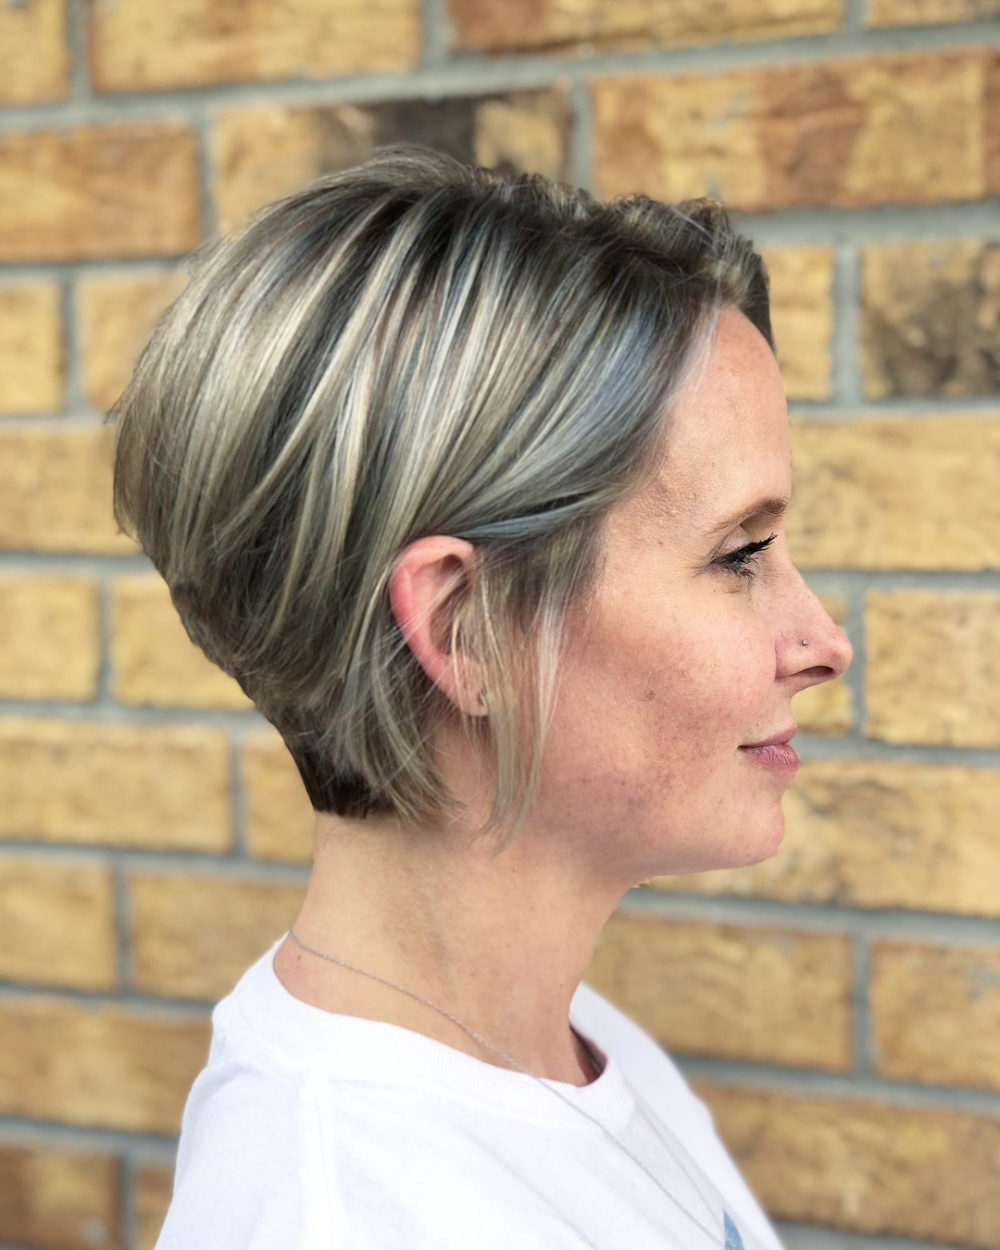 42 Sexiest Short Hairstyles For Women Over 40 In 2018 Regarding Short Haircuts For Women Over  (View 11 of 25)